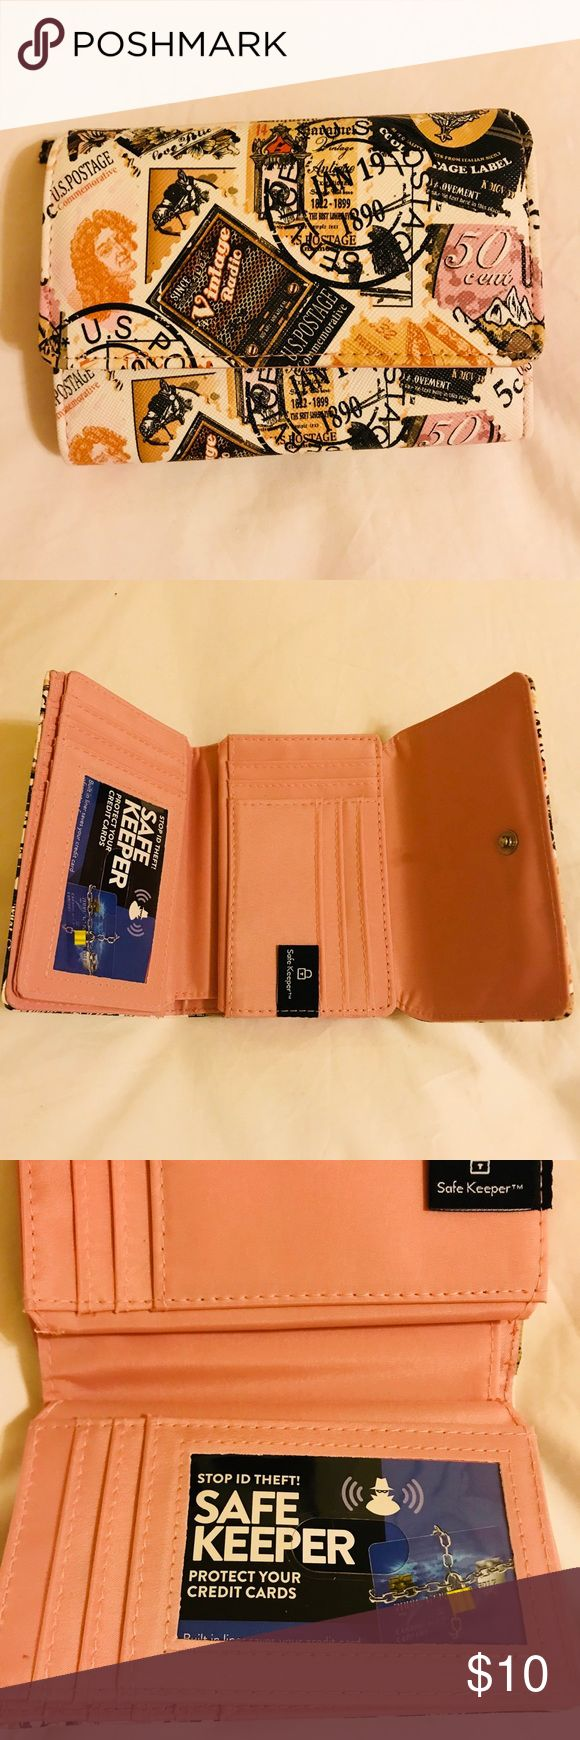 Women's Wallet - Safe Keeper Wallet Brand New Women's Wallet - Safe Keeper - Built in liner protects your credit card information from scanner theft Bags Wallets